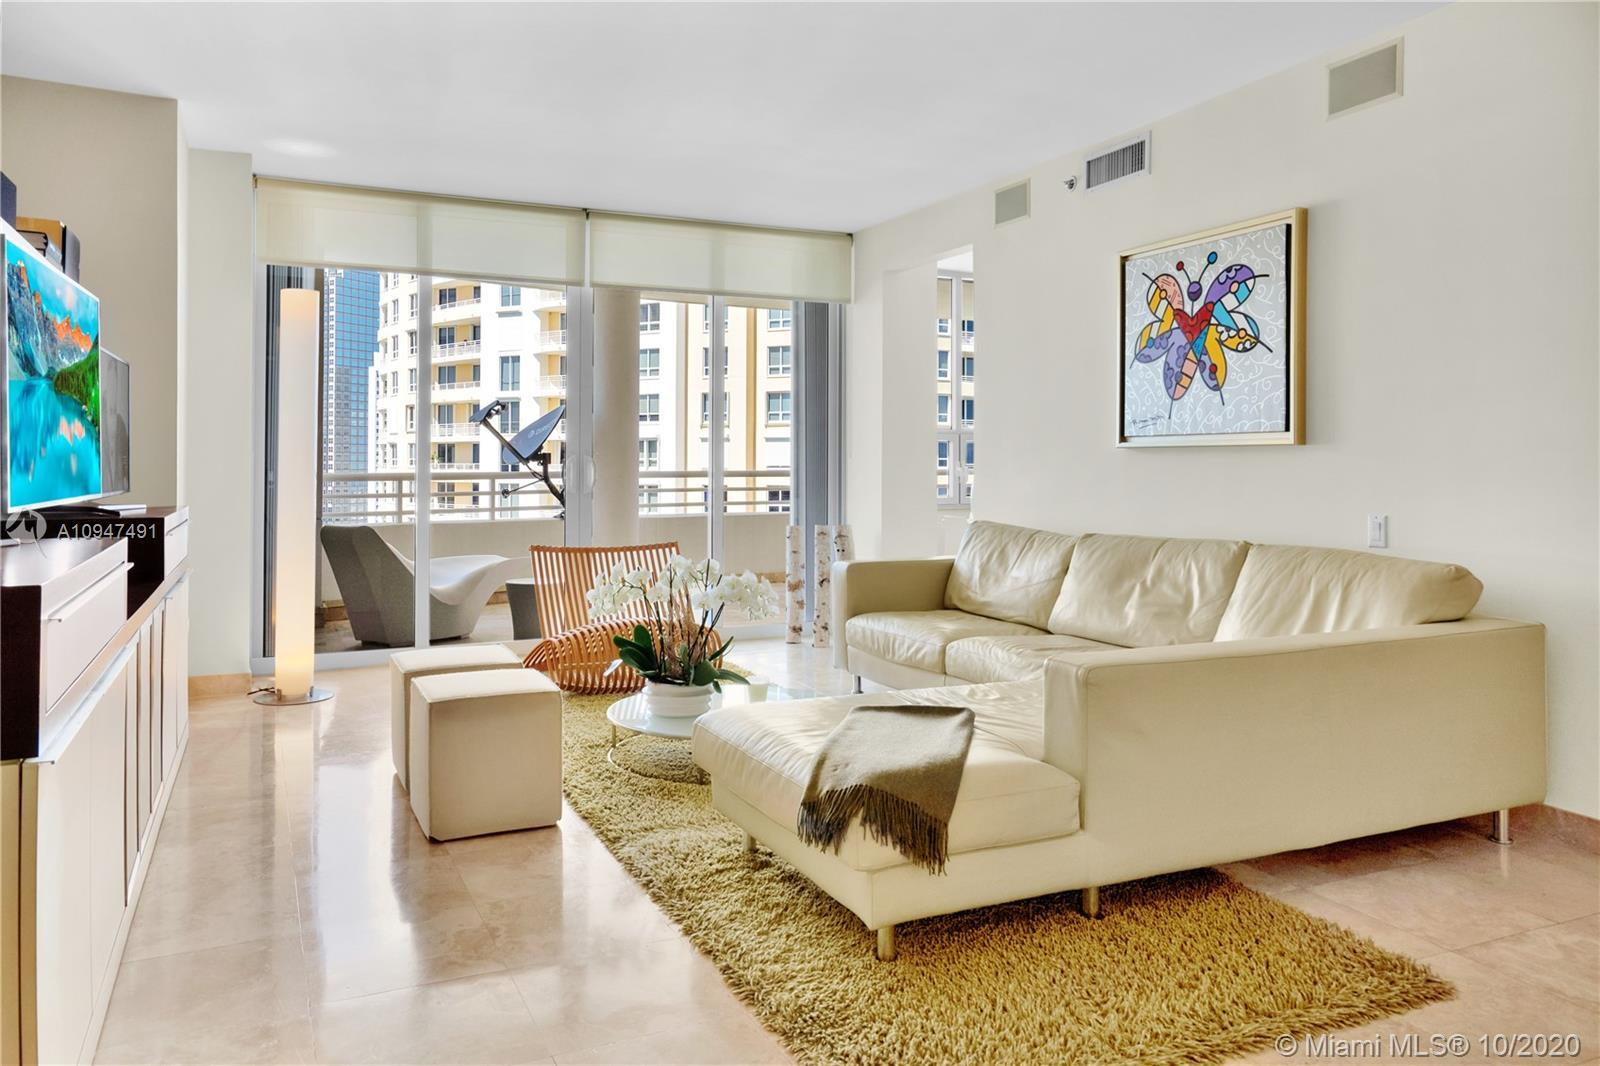 Live in the elegant Two Tequesta Point on Brickell Key - This rare high floor unit has stunning city